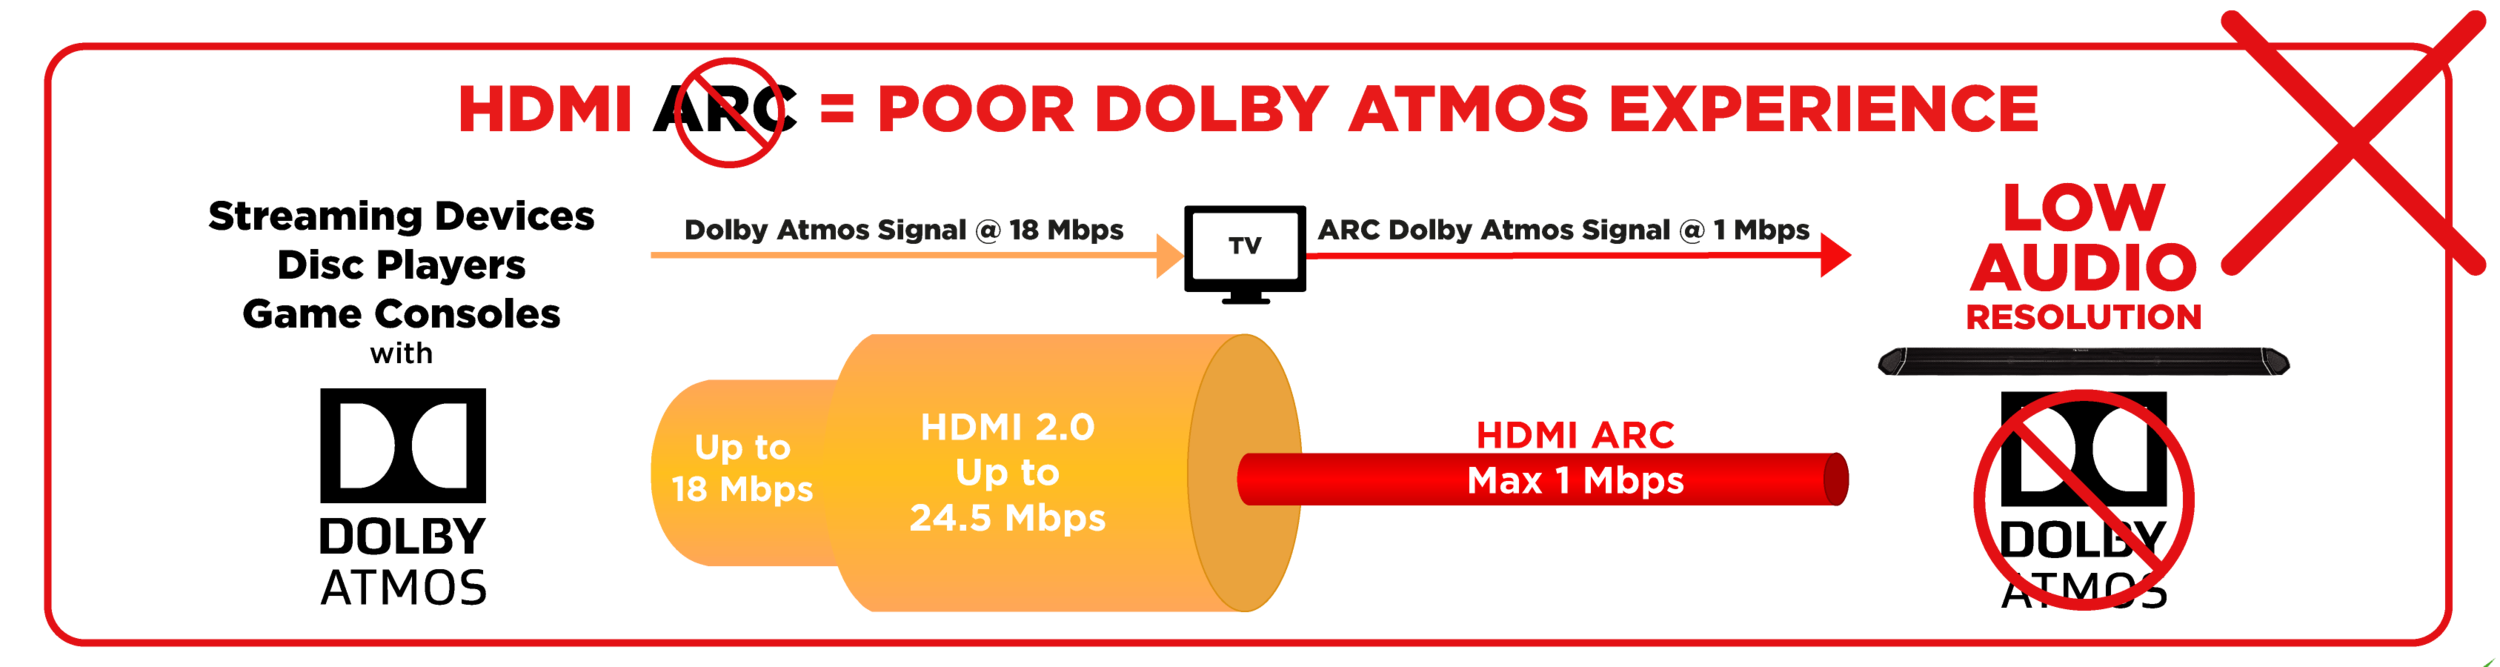 dolby-atmos_hdmi-comparison_simplified-v3-bad.png